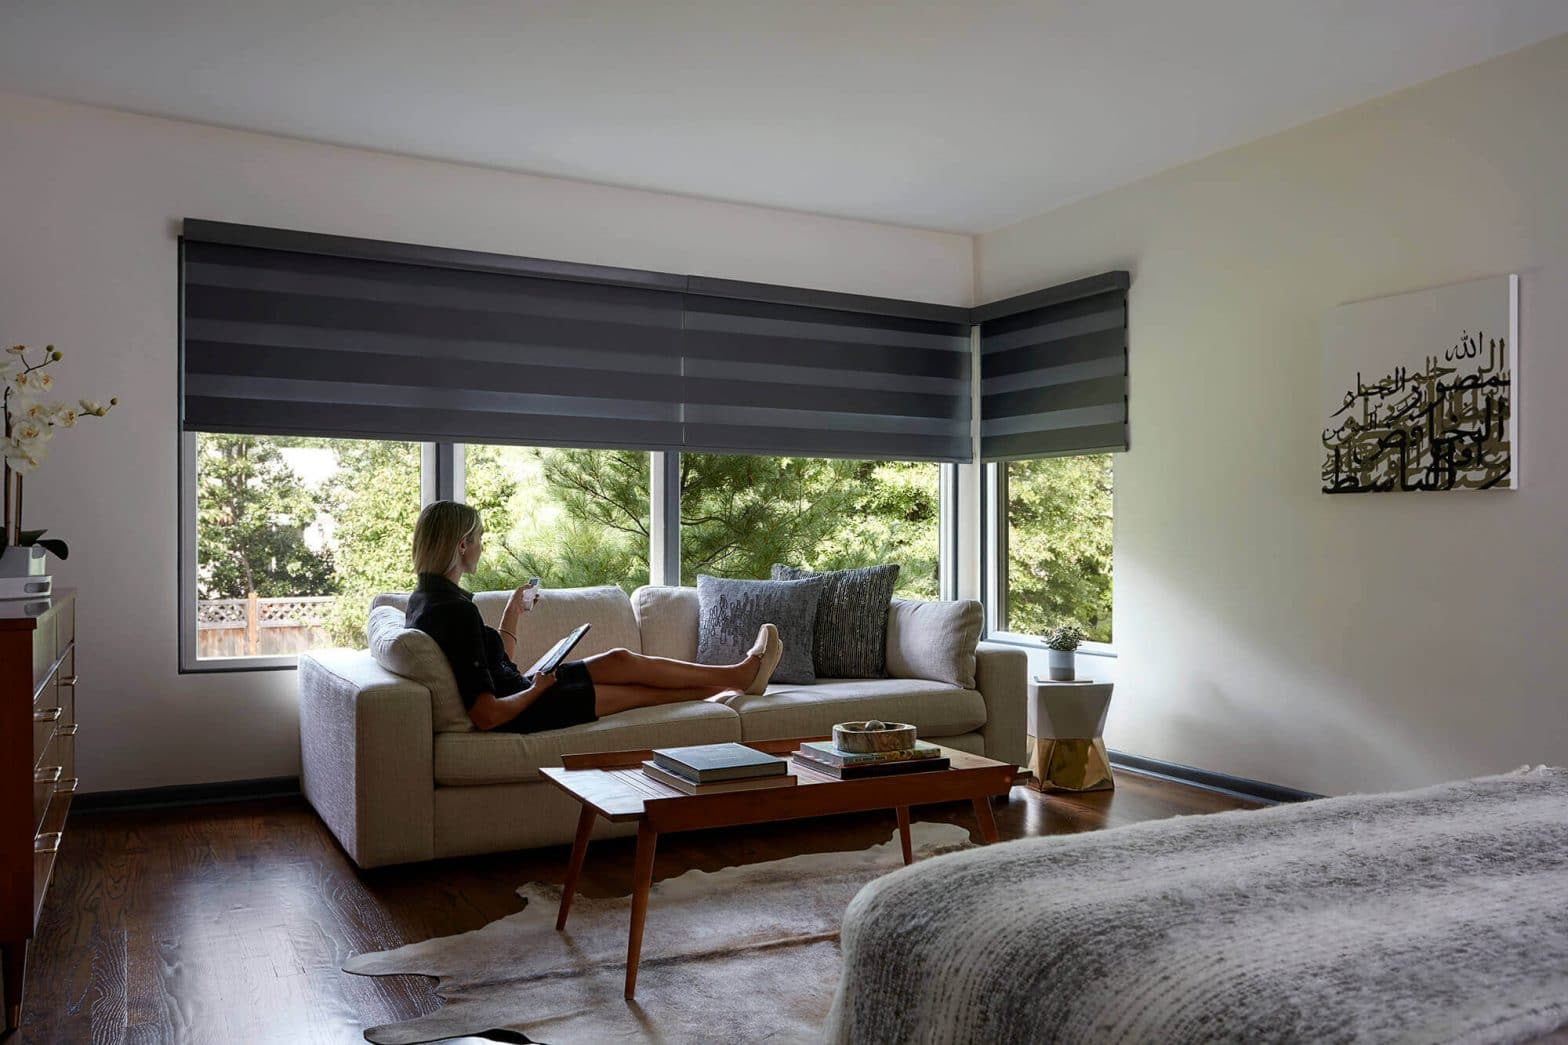 Advantages of Automatic Window Blinds and Shades